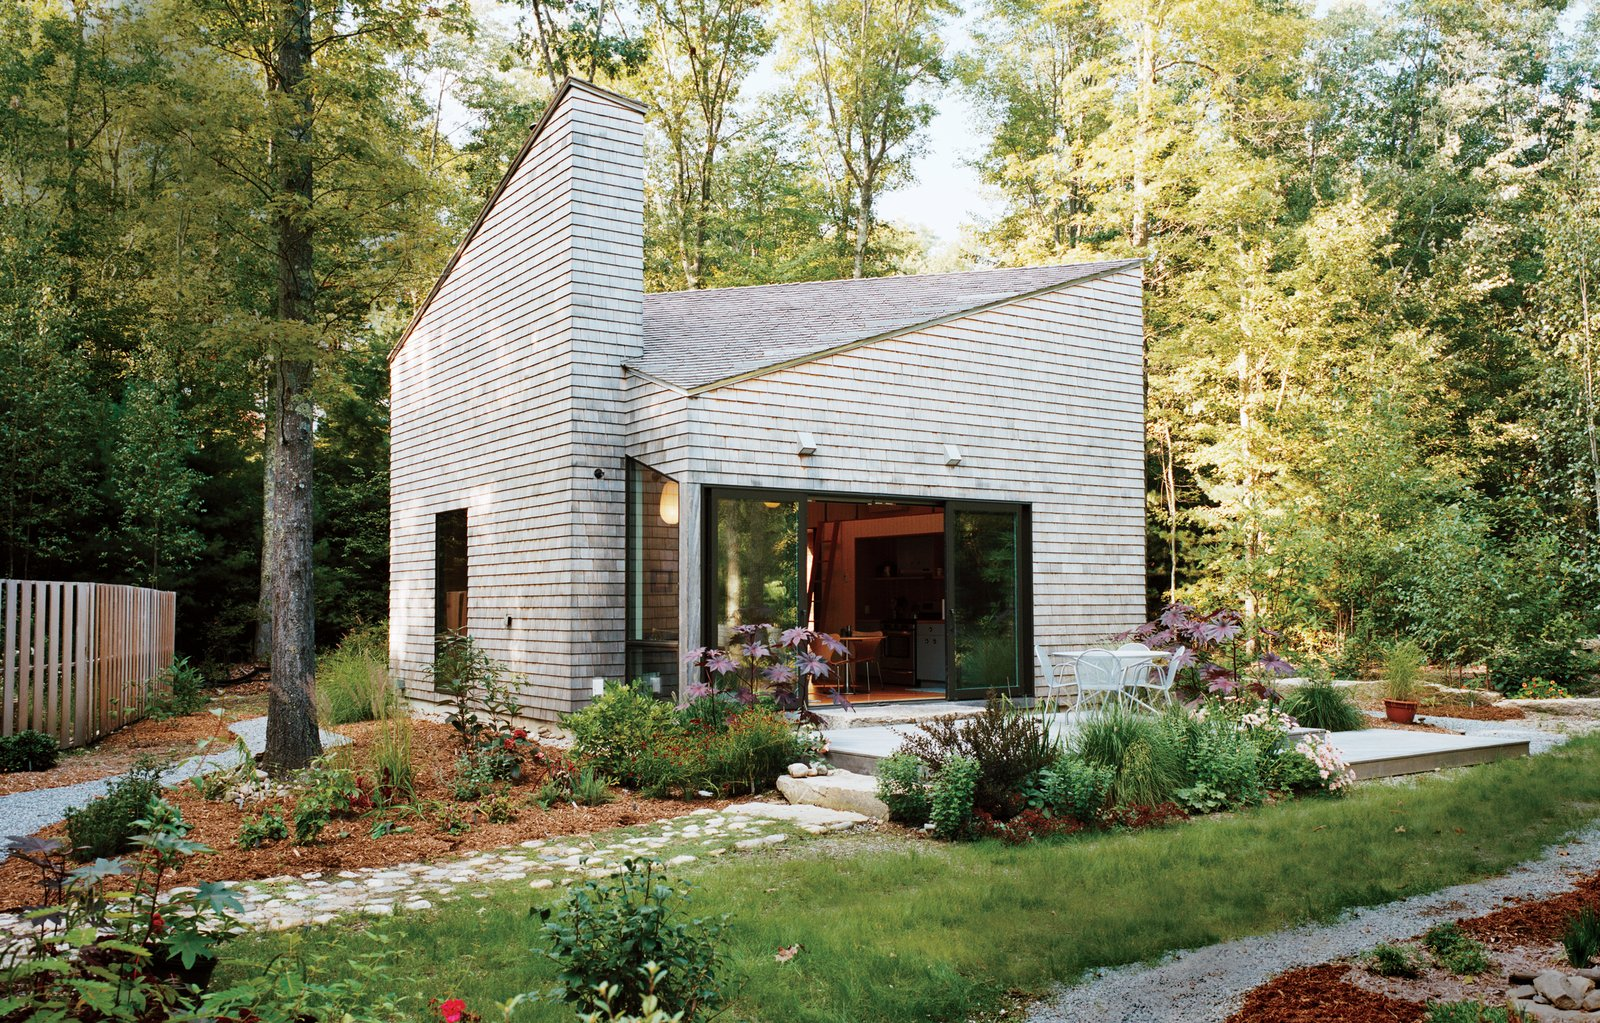 An artist by trade, and gardener by passion, Allison Paschke commissioned Providence-based architecture firm 3SIXØ to build a modest cottage that would allow her to reconnect with nature. She landscaped the home's lush gardens herself.